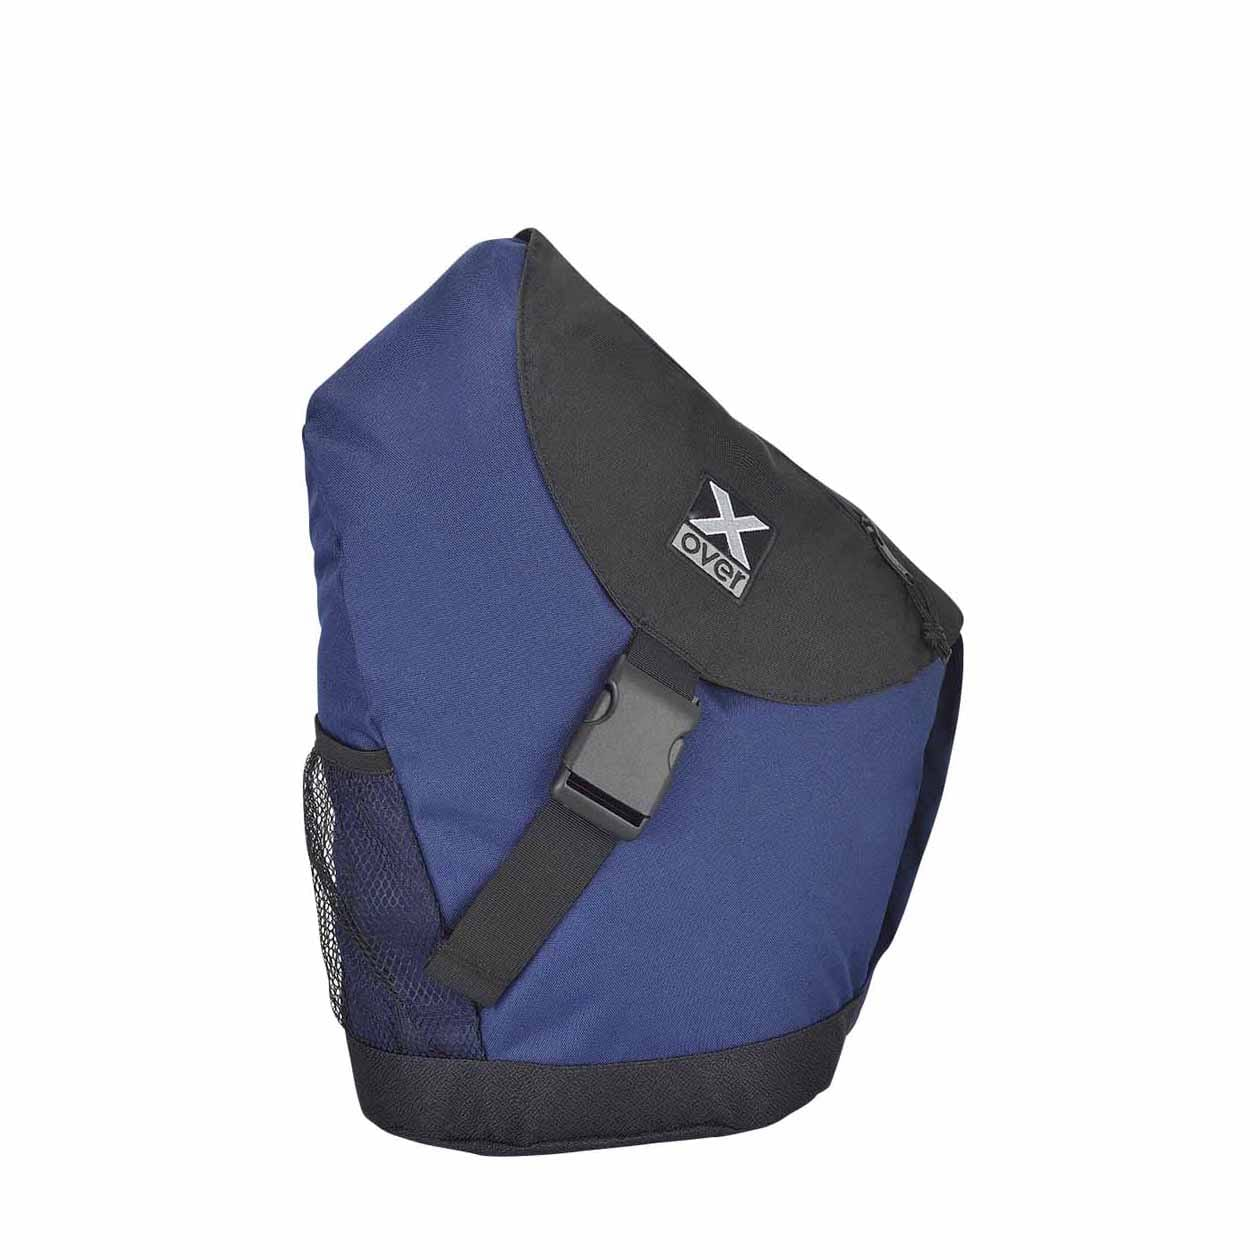 x-over schuine rugzak original amsterdam navy medium